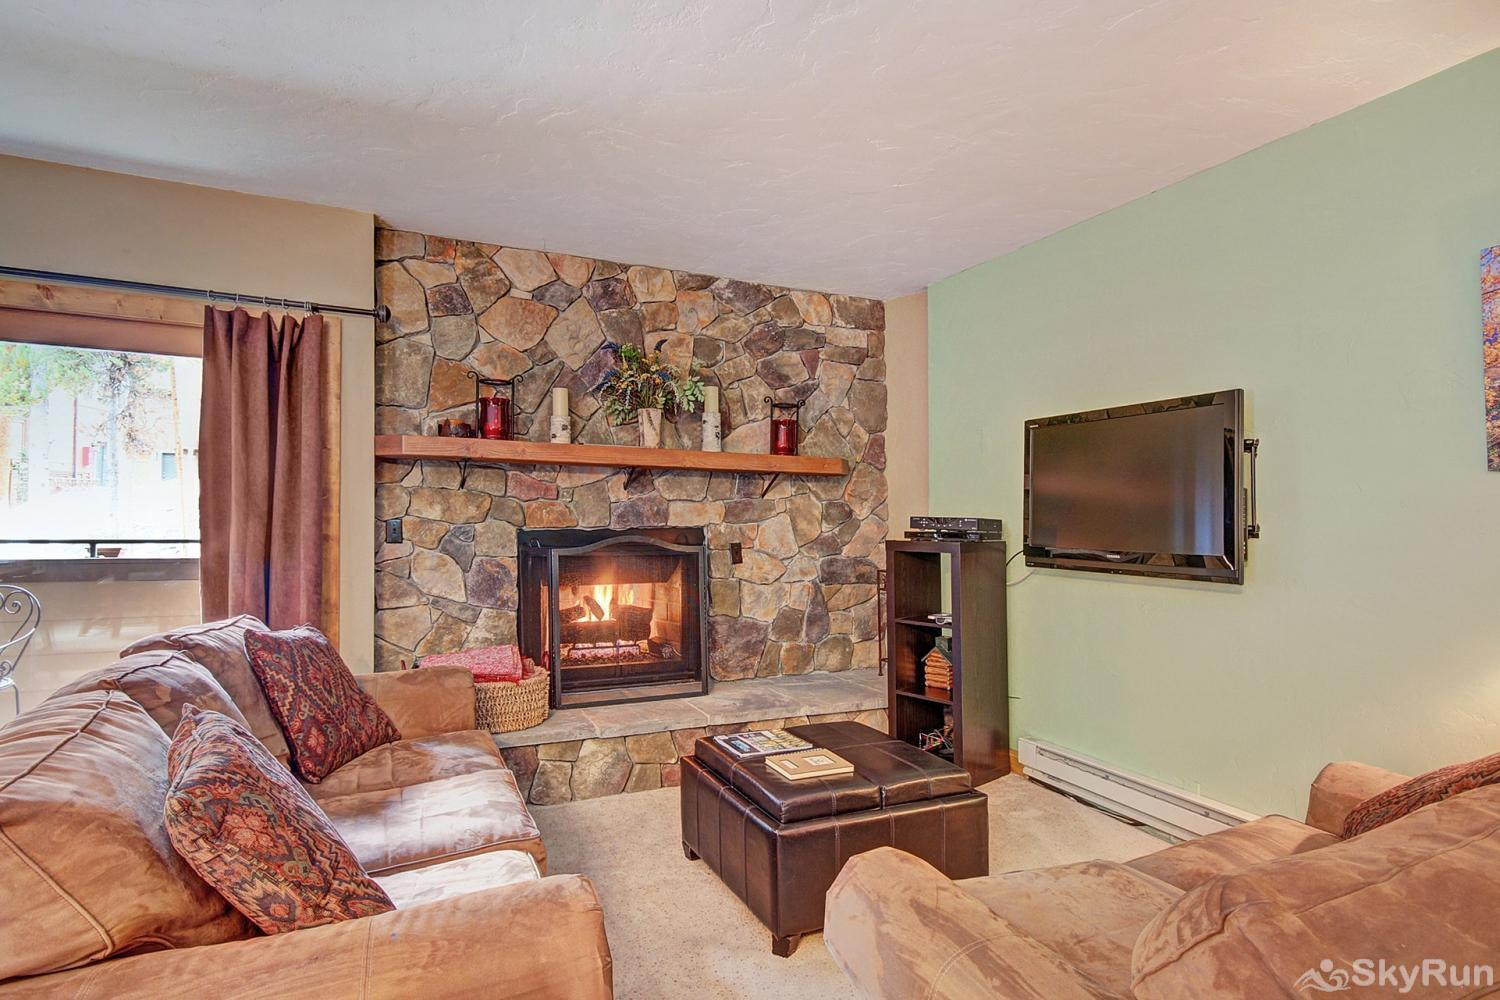 Sundowner II 201 Alternate view of living room with flat screen TV and gas fireplace